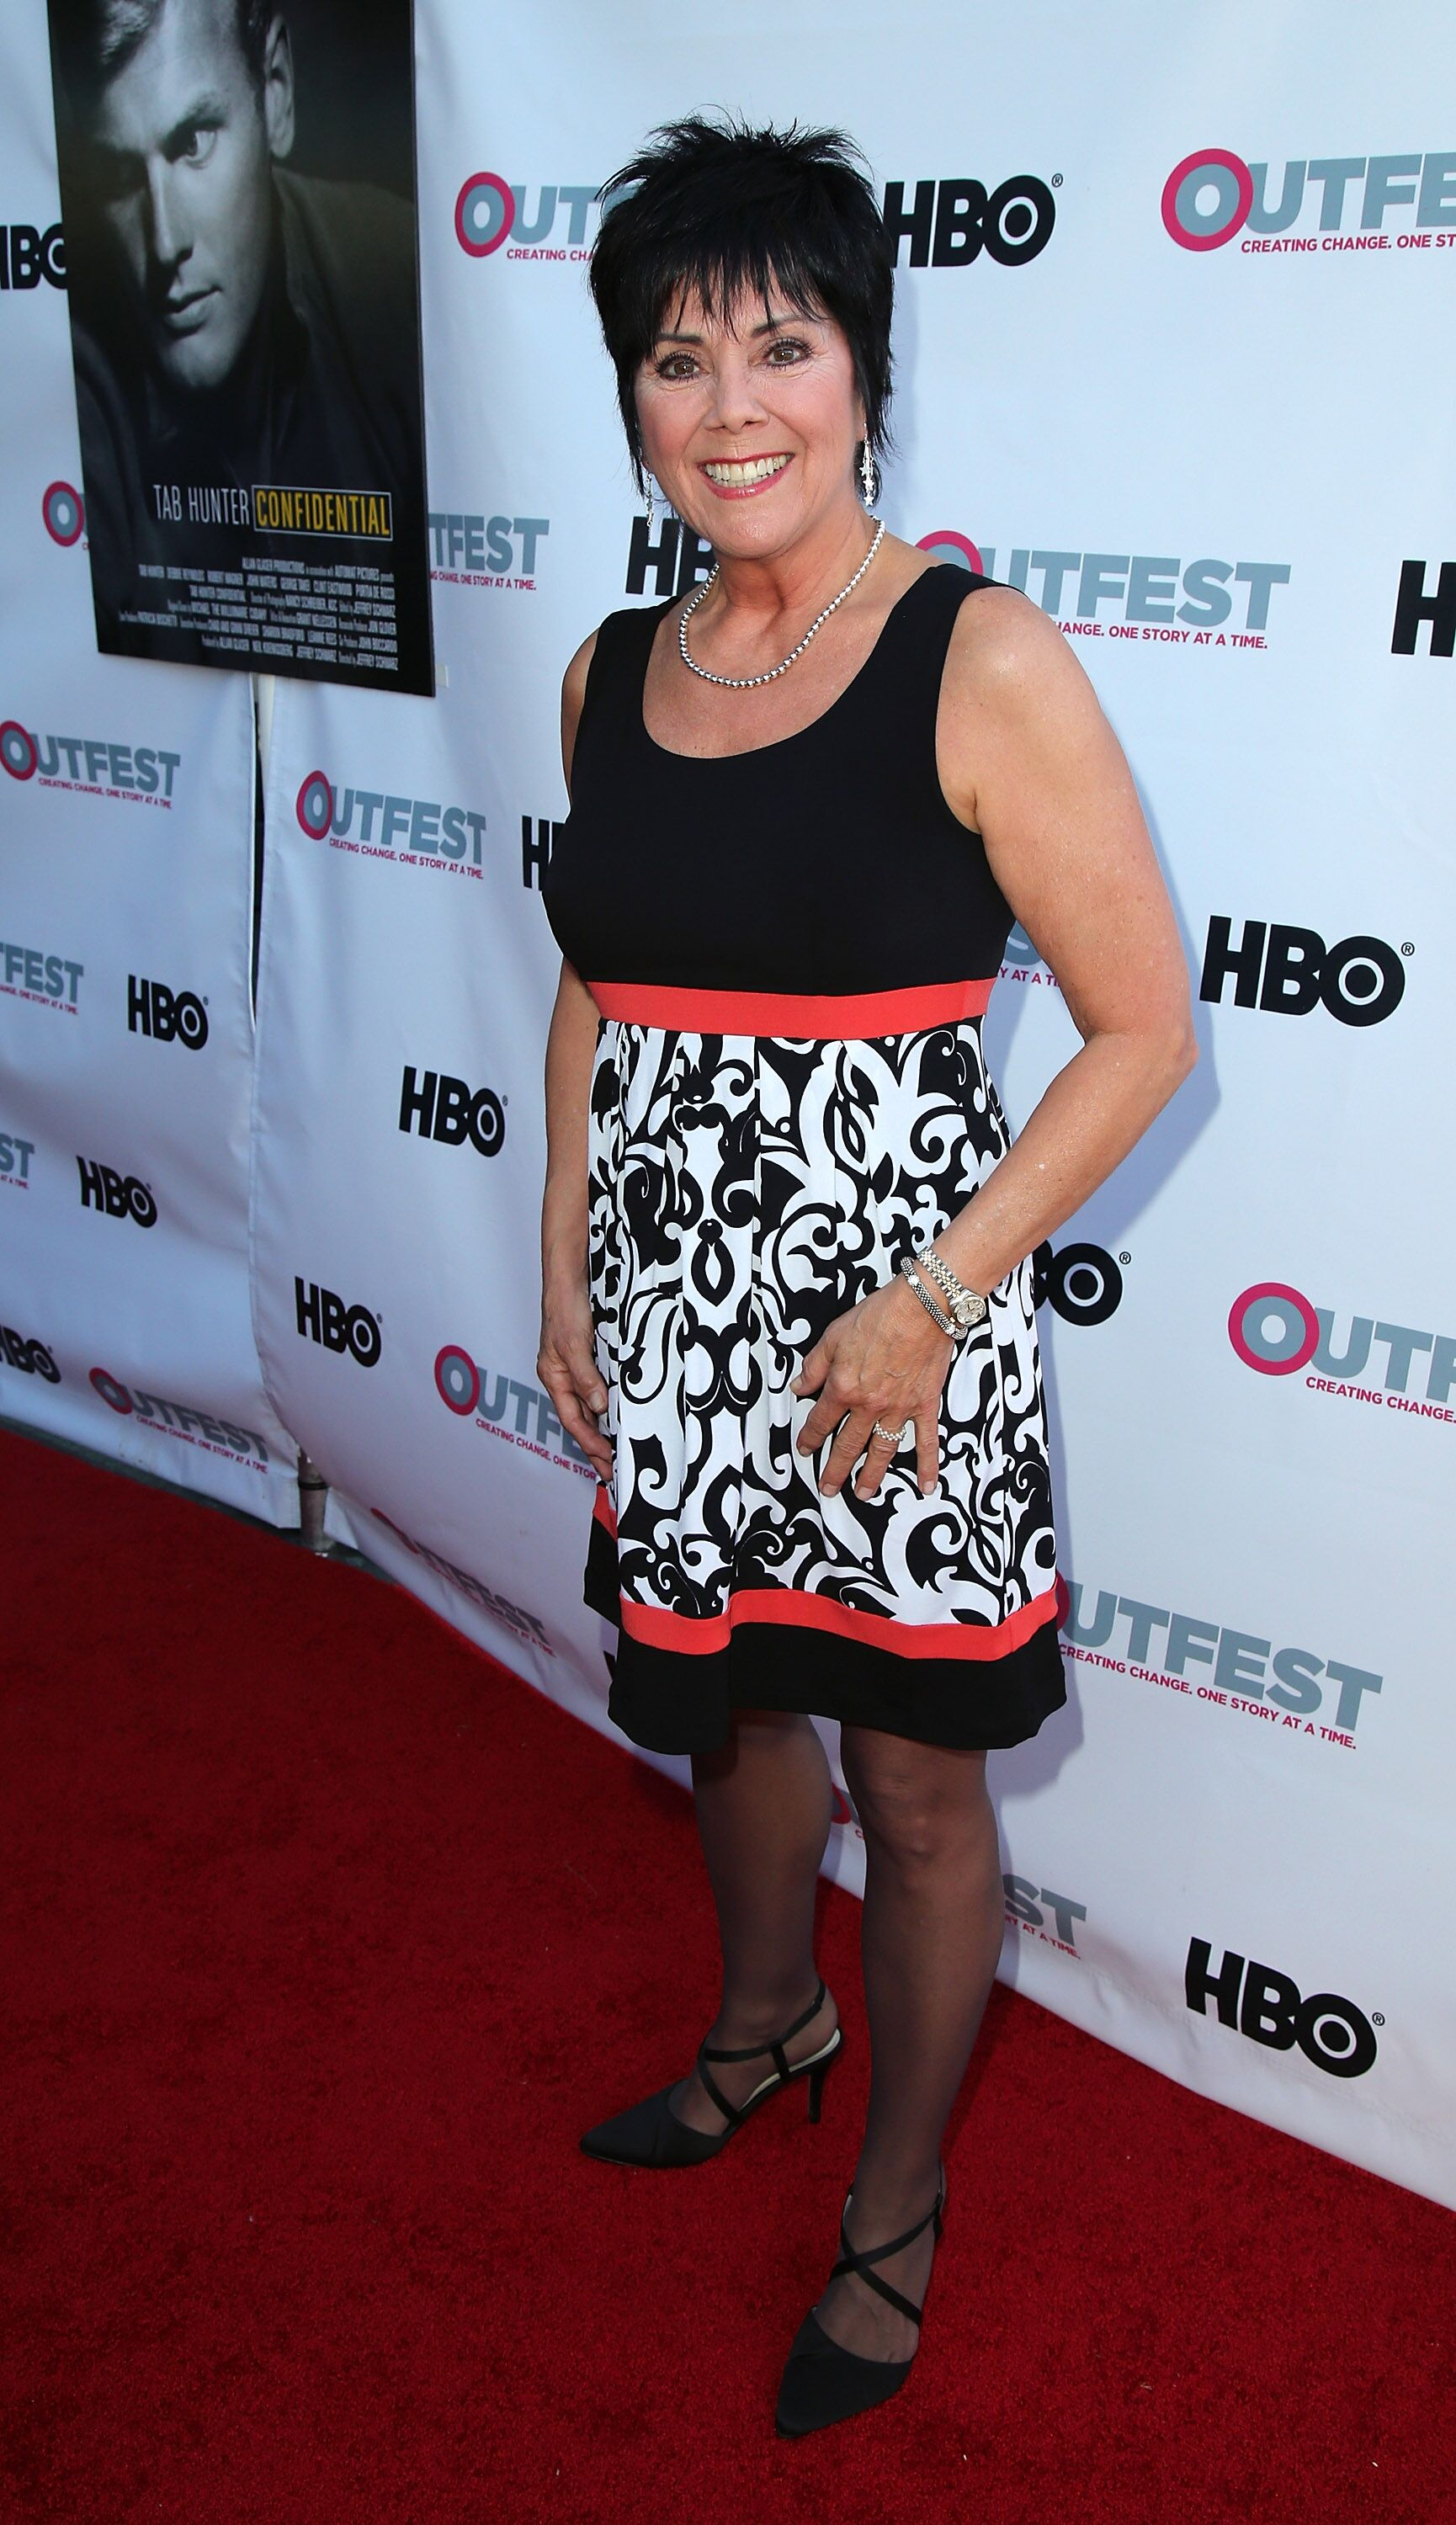 """Joyce DeWitt attends a screening of """"Tab Hunter Confidential"""" at the 2015 Outfest's LGBT Los Angeles Film Festival  